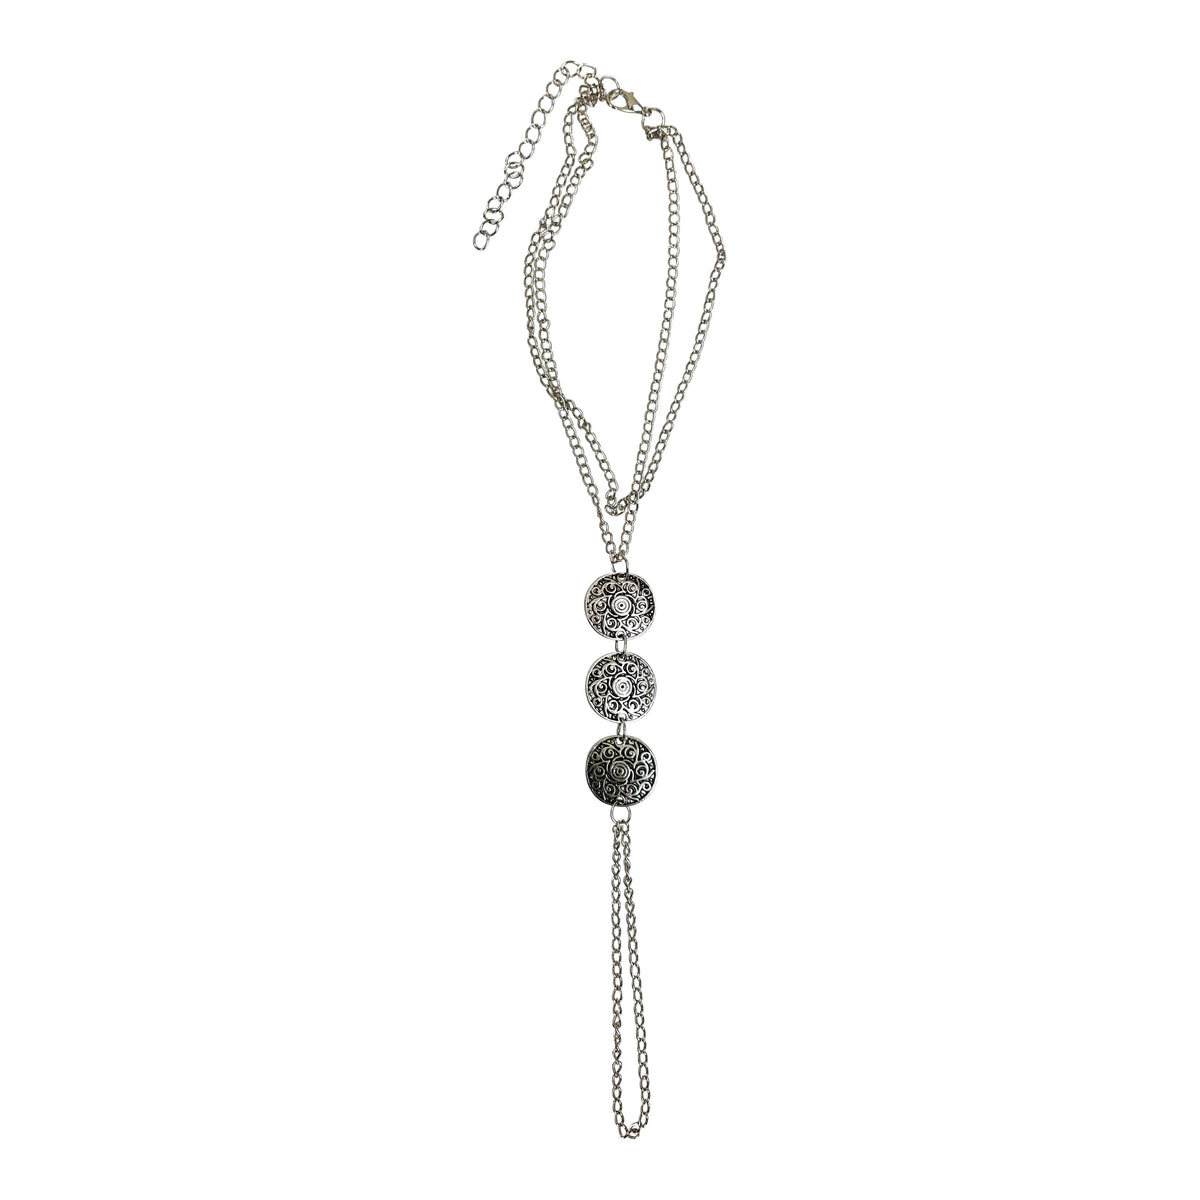 Silver Tone Wind Foot Chain